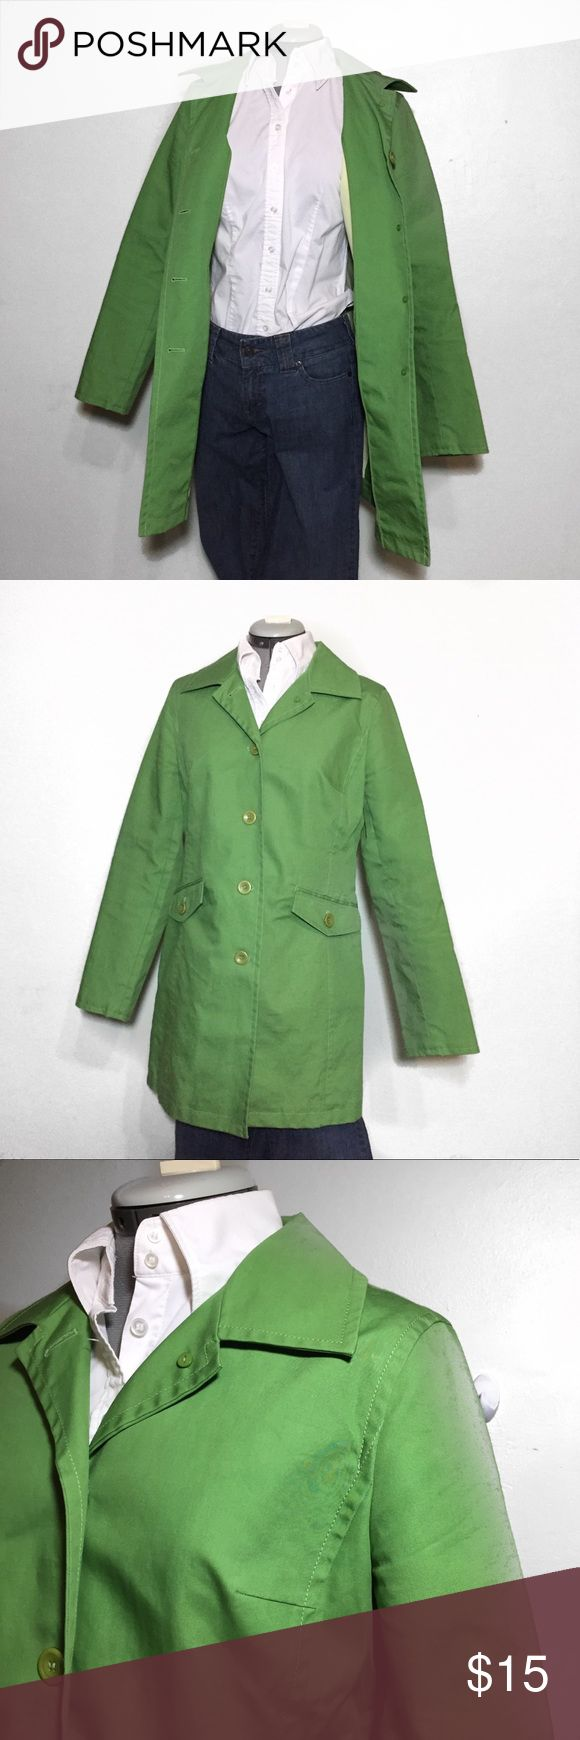 """Ann Taylor Loft Spring Green Trench Coat M Flaw Ann Taylor Loft Spring Green Trench Coat. There is no material tag, Feels like a stiff cotton that it is water and wind resistant. Size M measures flat approximately: 16"""" across shoulders, 18"""" across chest, 16"""" across waist, 20"""" across hips, 31"""" long, 24"""" sleeve. Flaw- small red spot on Left elbow. Dry Clean. 216/100/022318 LOFT Jackets & Coats Trench Coats"""